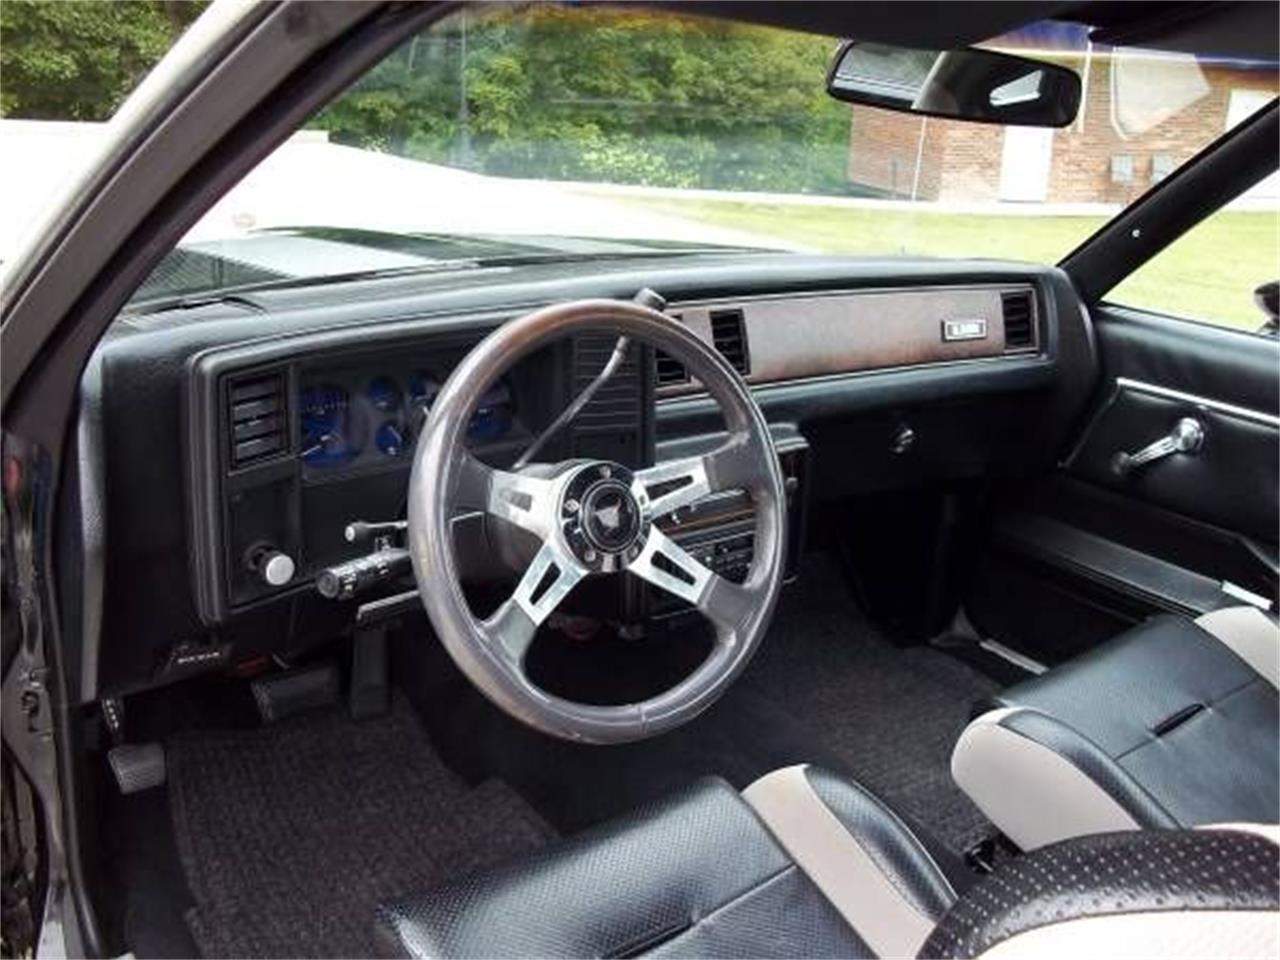 1985 Chevrolet El Camino for sale in Cadillac, MI – photo 23